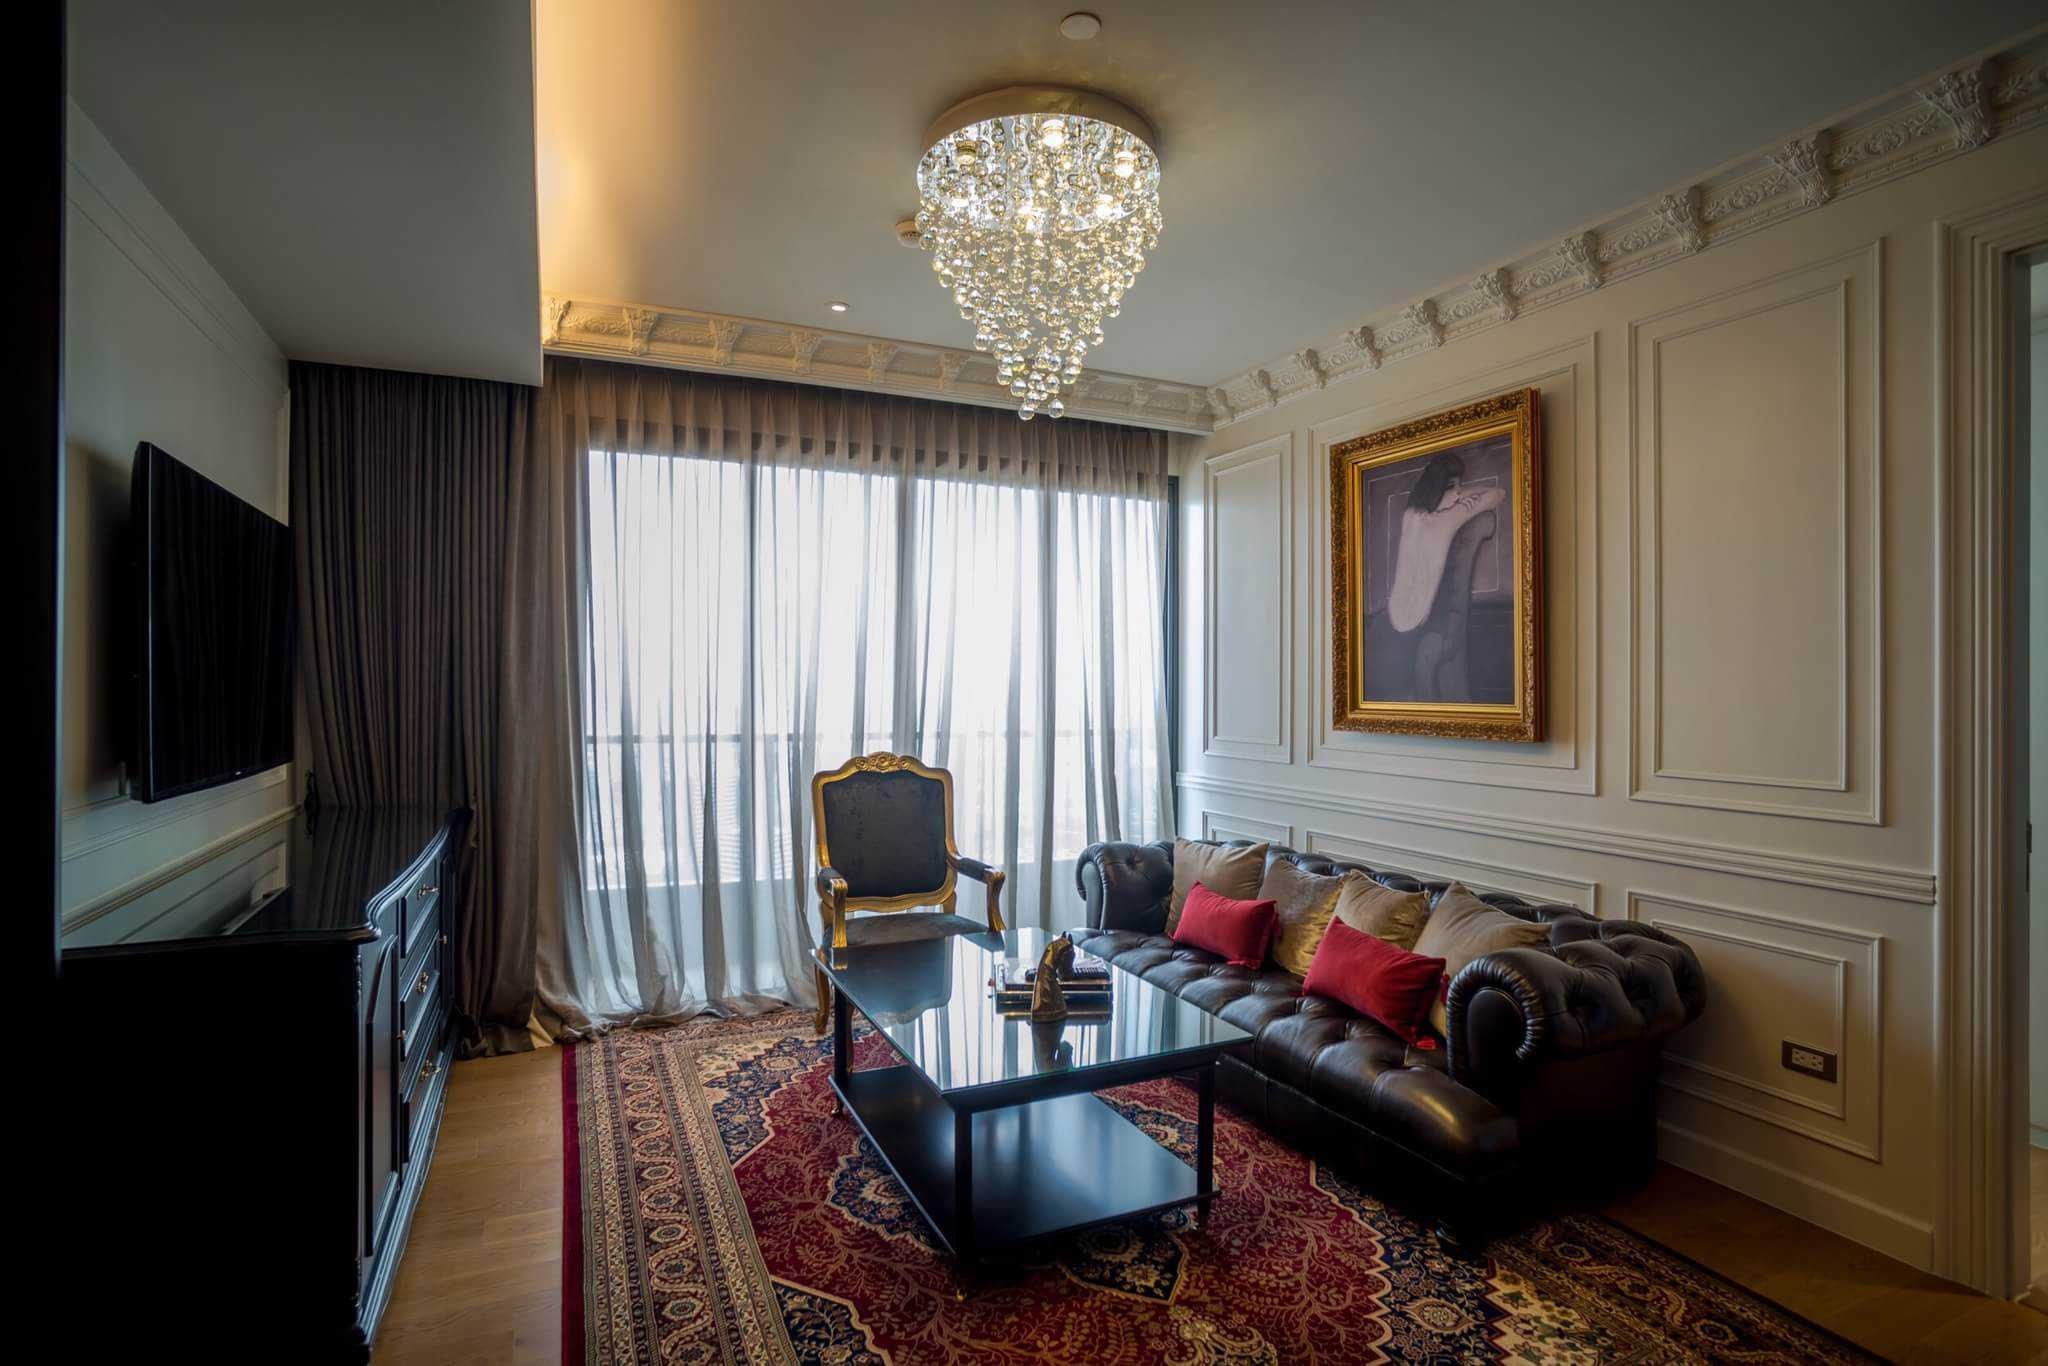 LTH3372&LTH3373 -Mini Luxury Penthouse FOR RENT&SALE at Sukhumvit 24 area 3 beds size 110 Sq.M. Nearby BTS Phrom Phong station